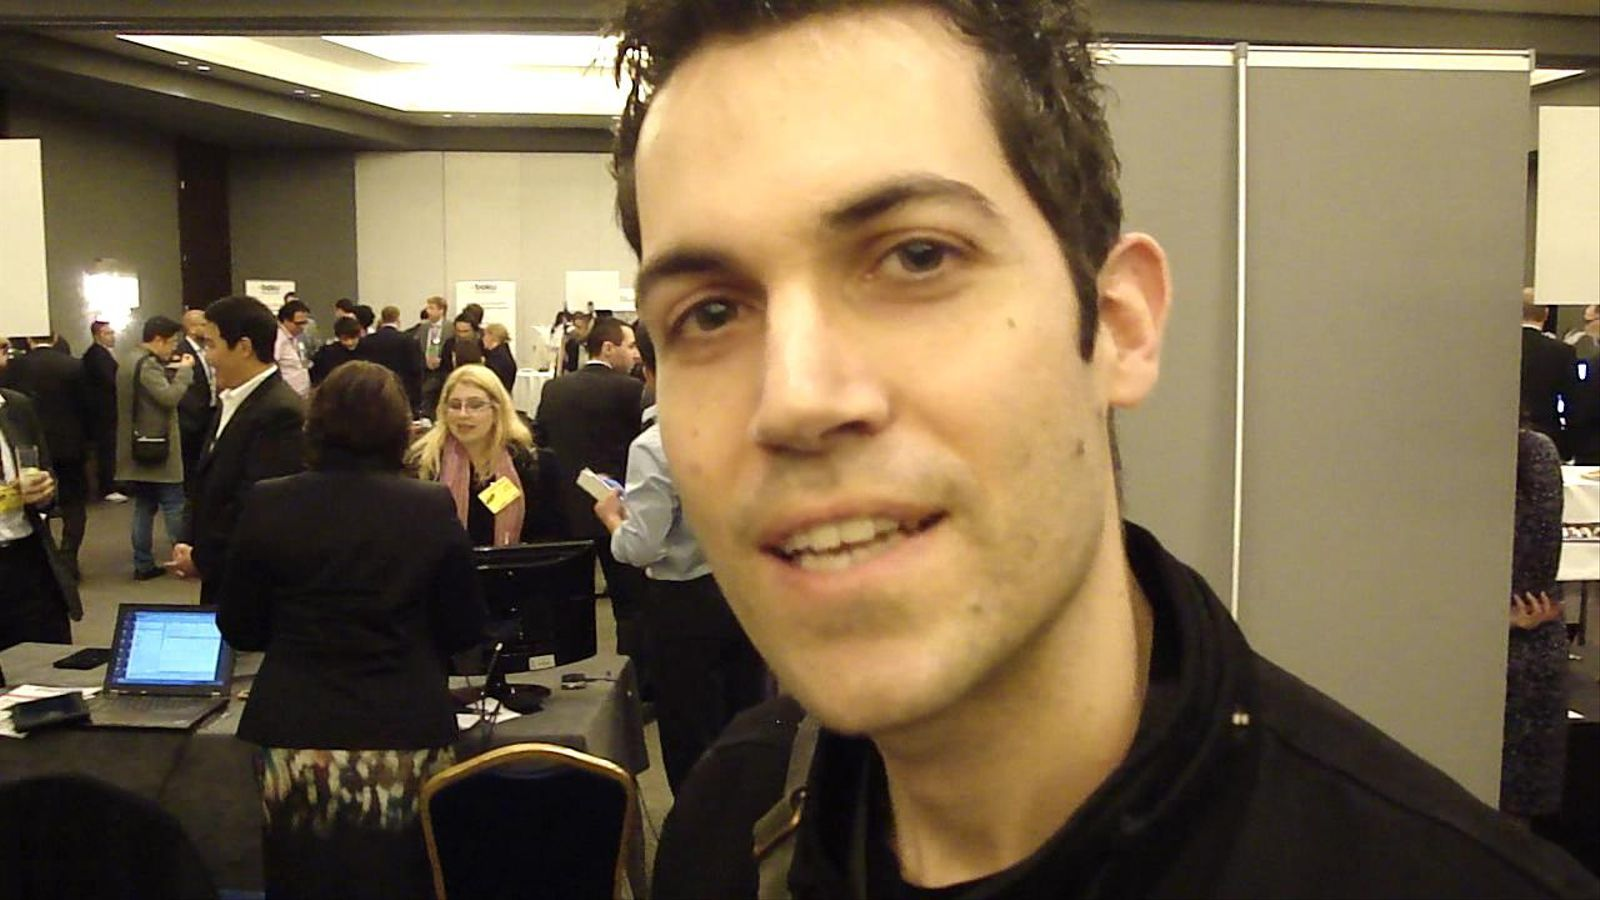 [MWC 2012] Vídeo: Nokia 808 PureView